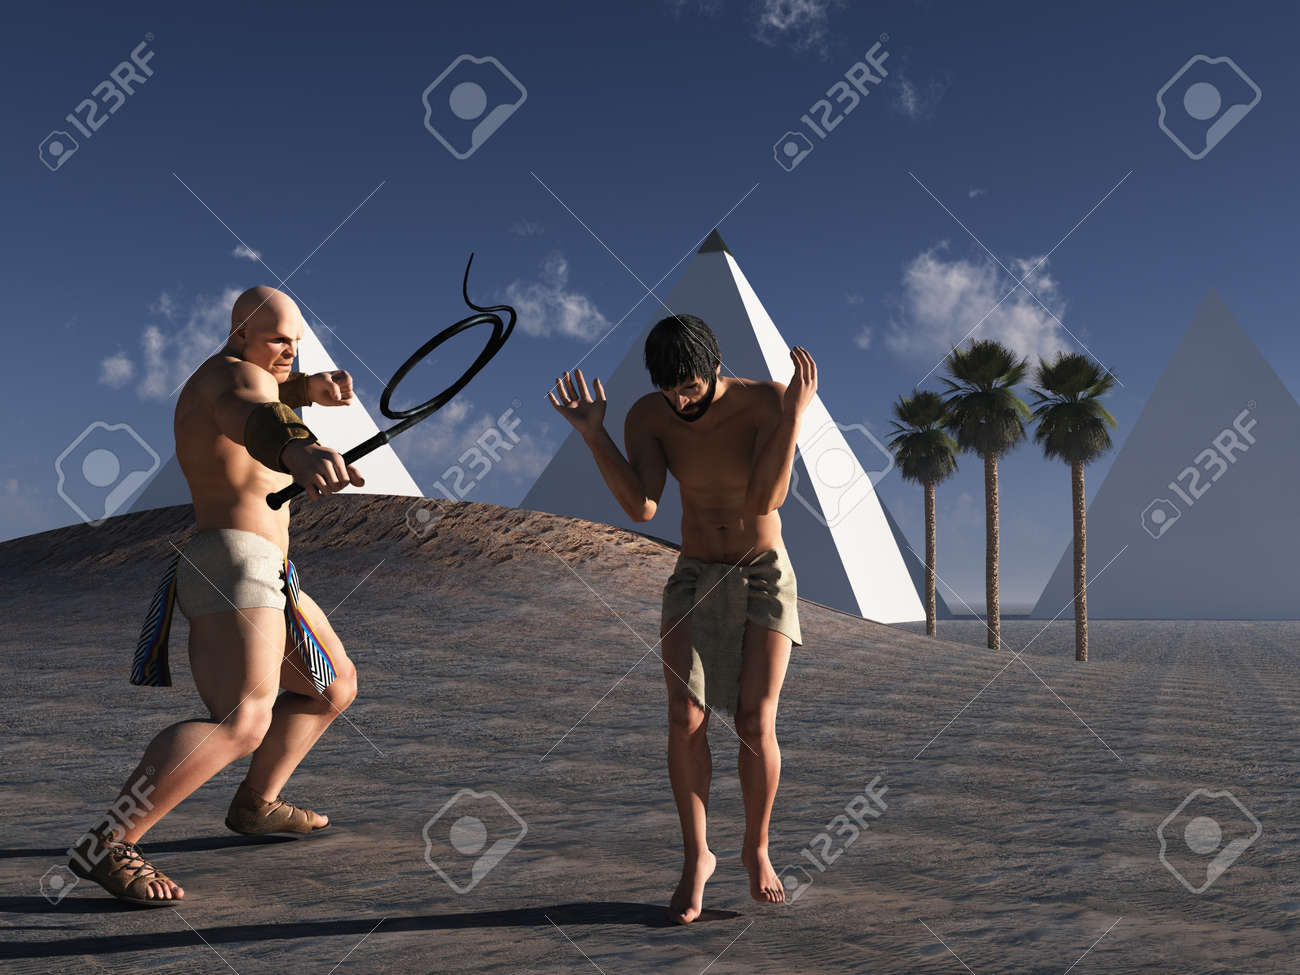 Ancient Egyptian overseer and cowering slave - 14032898